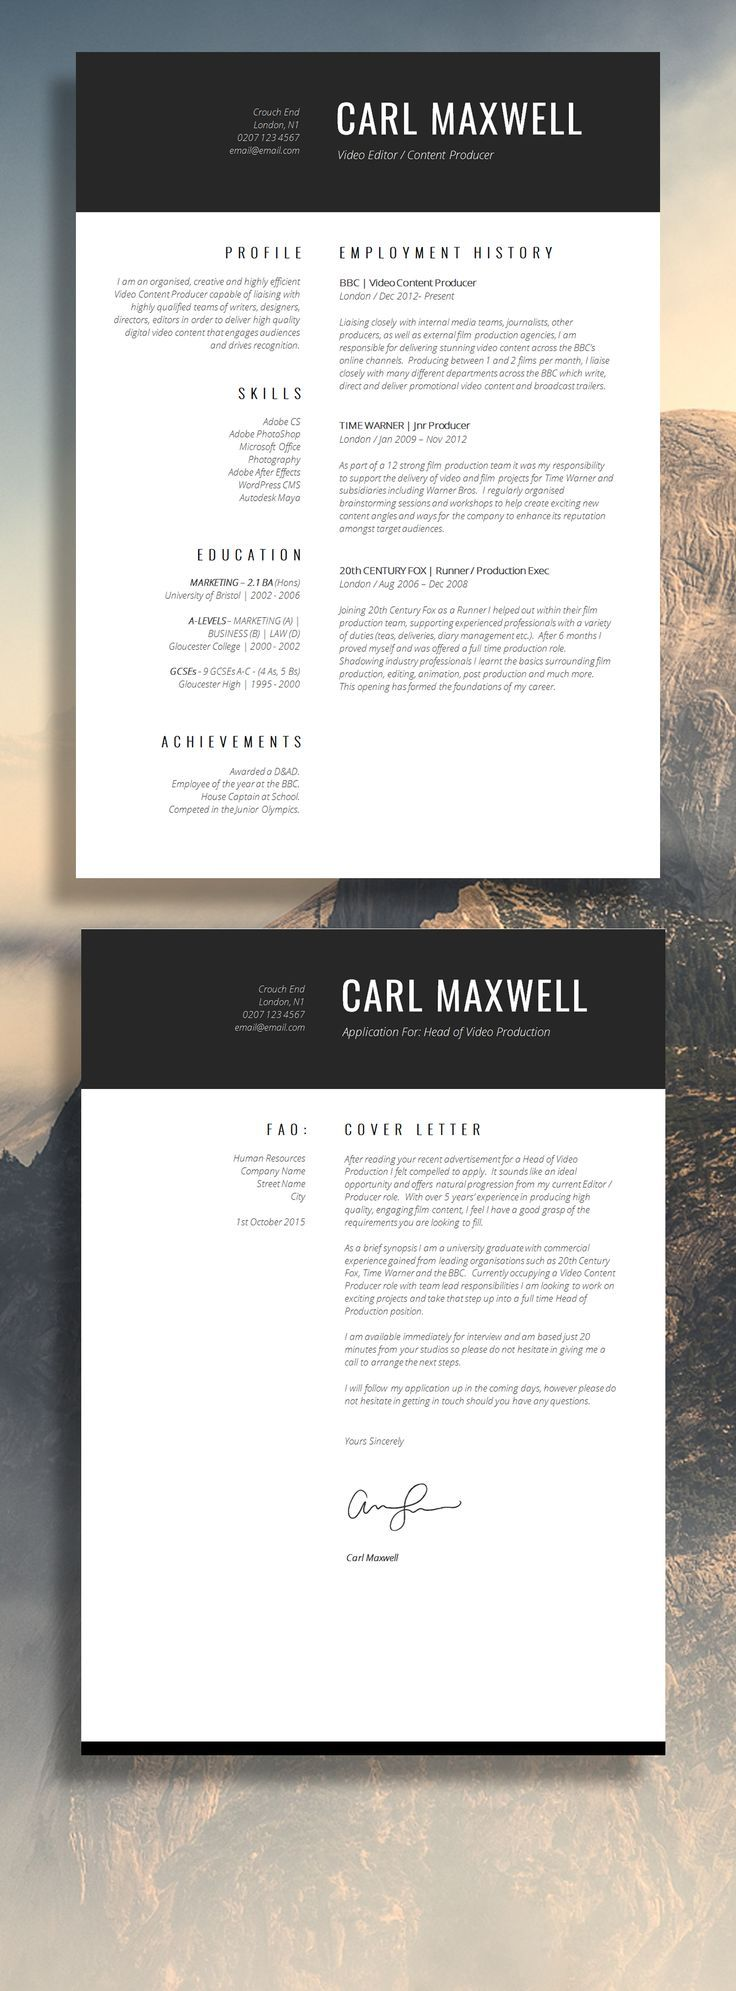 resume examples awesome simple one page resume design film play